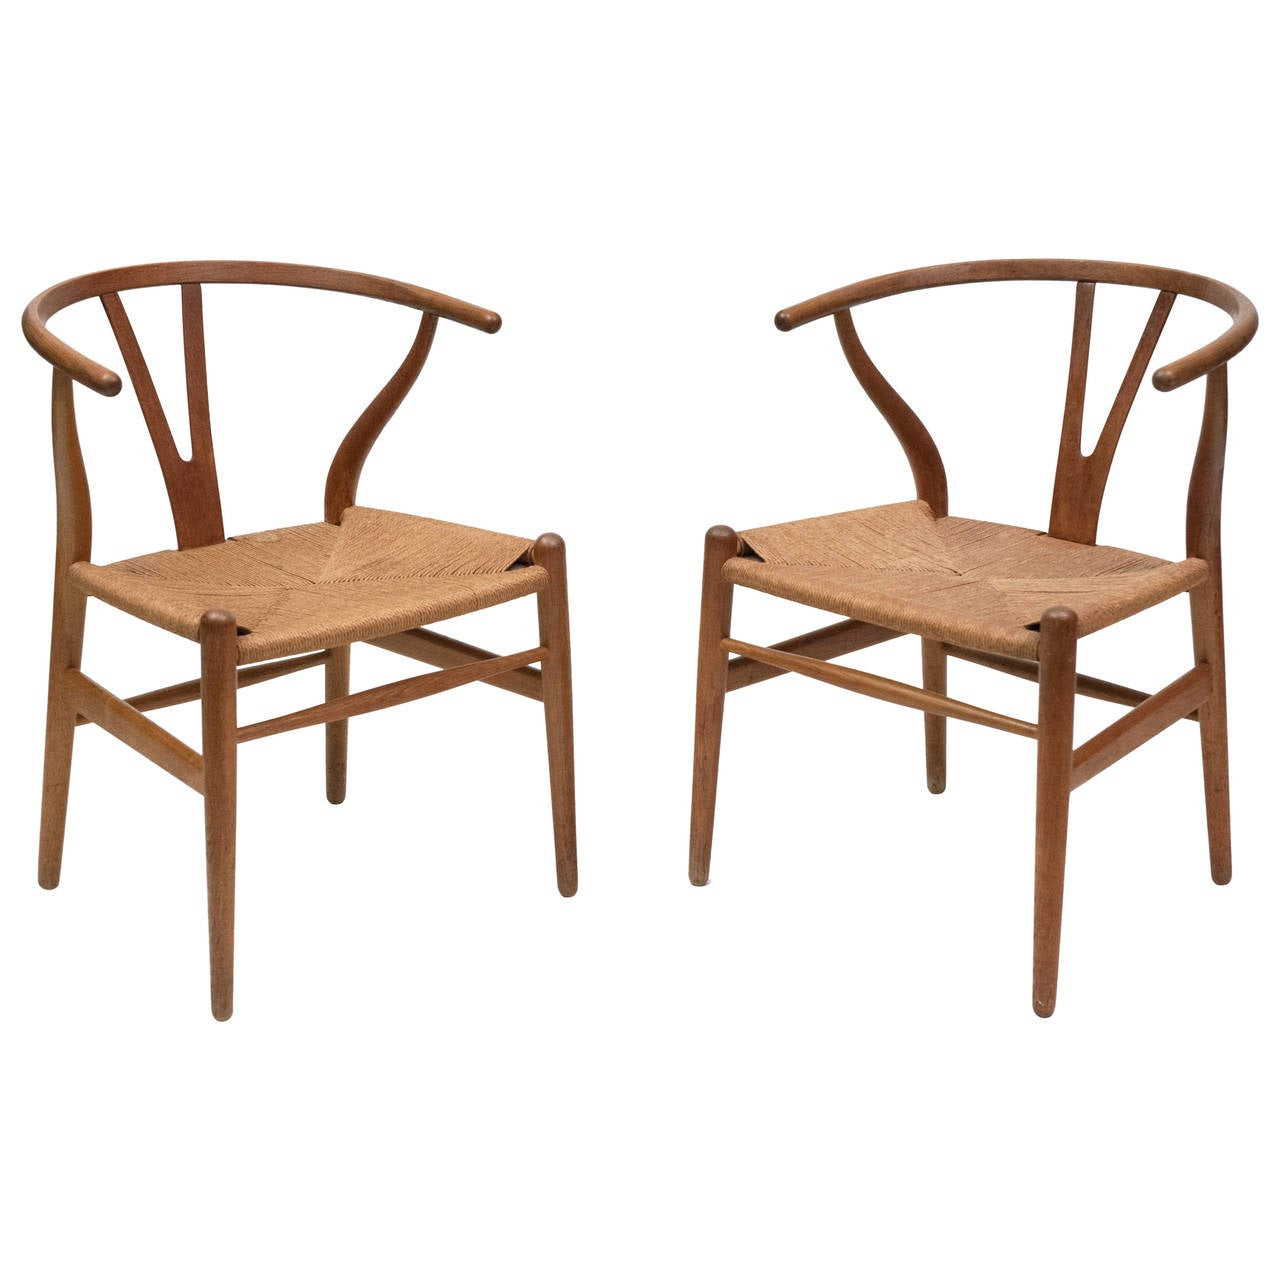 Pair of Hans Wegner Wishbone Chairs CH24 Carl Hansen at